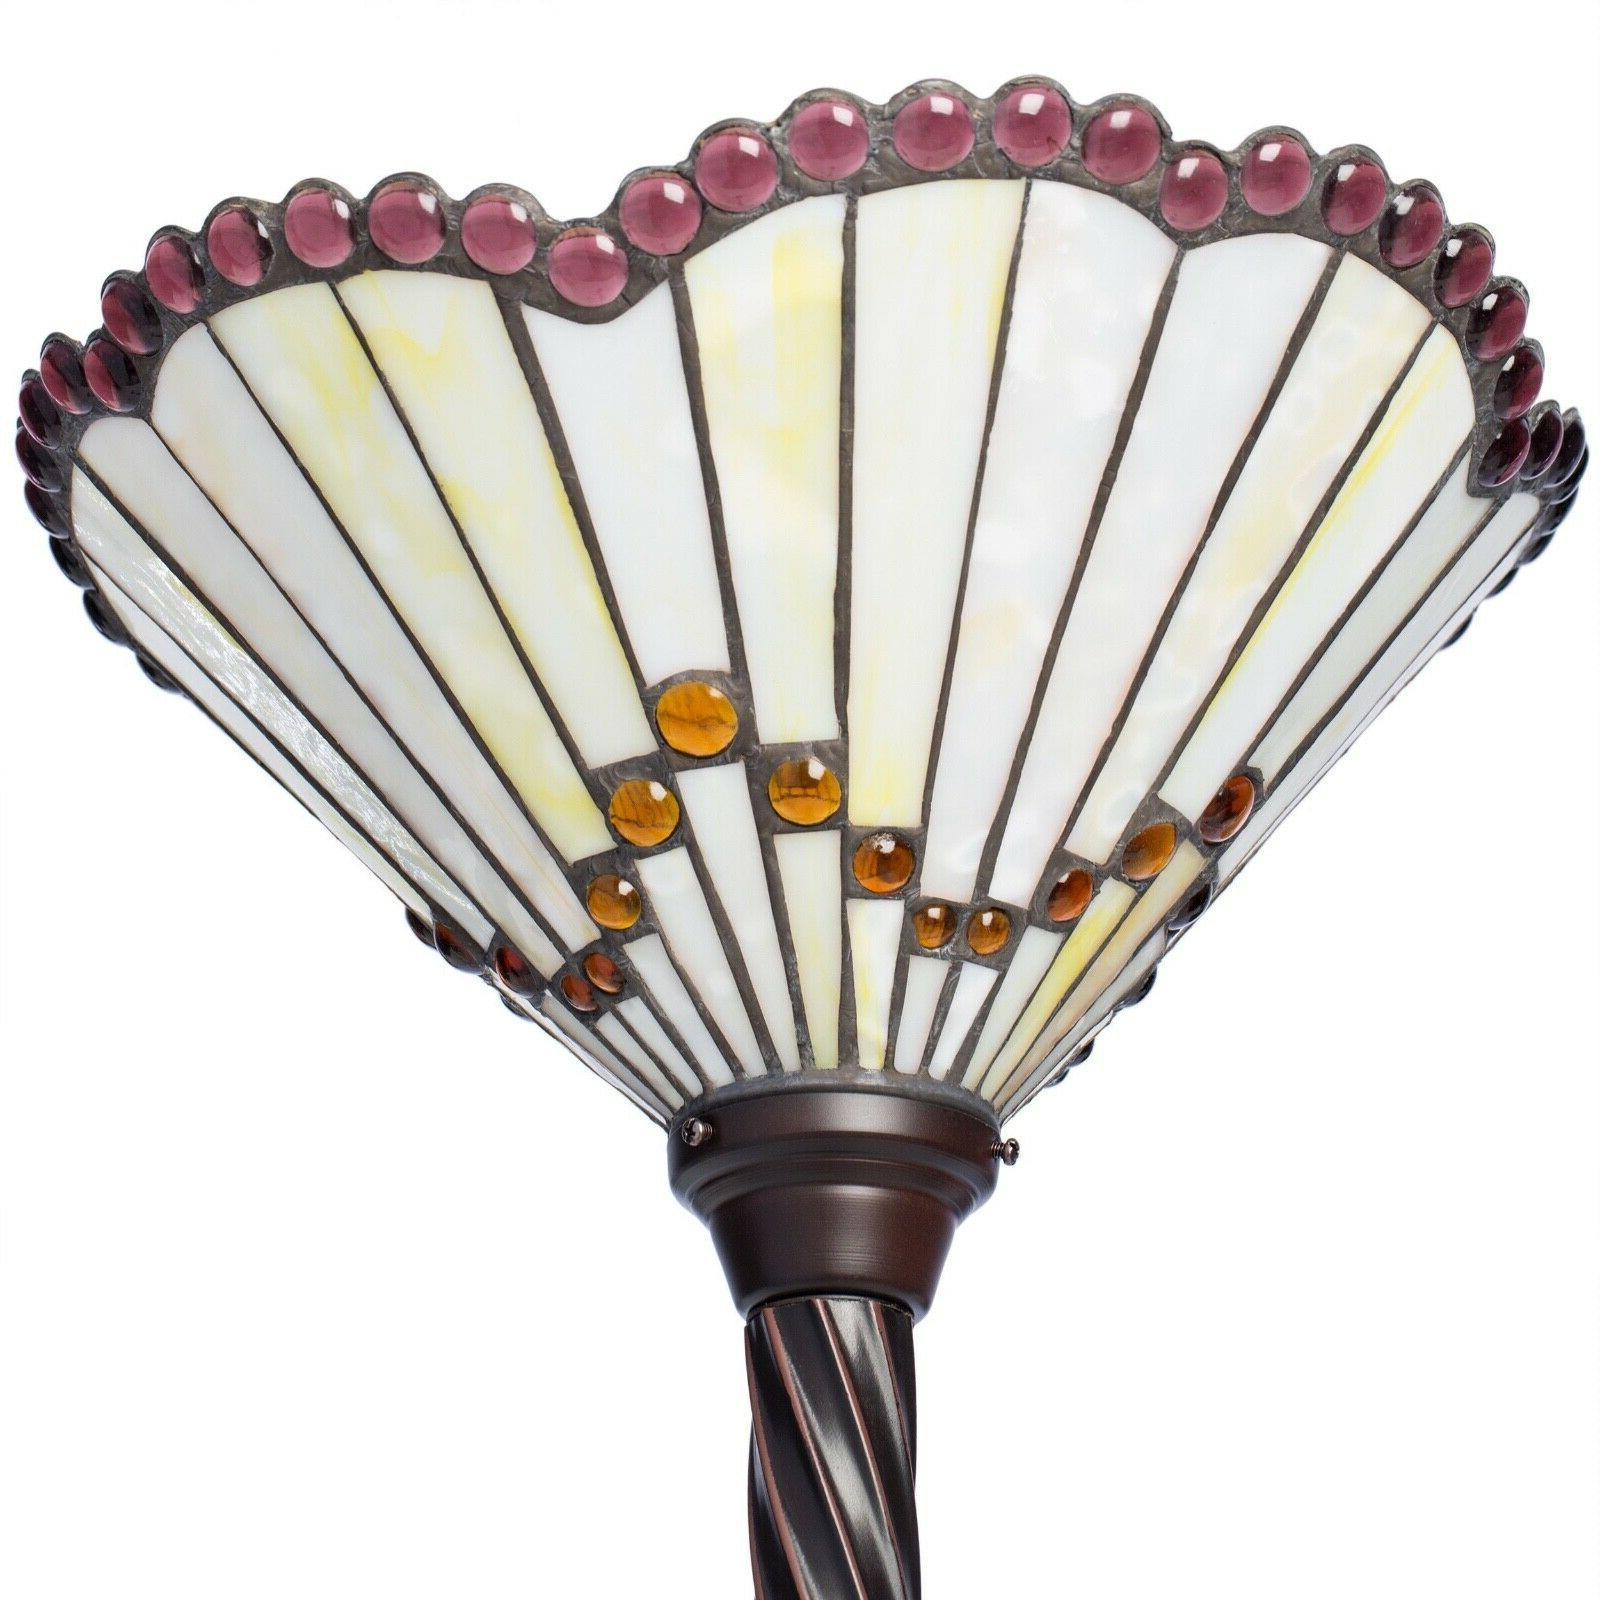 Tiffany Style Floor Lamp Lighing Glass White Jewel Torchiere